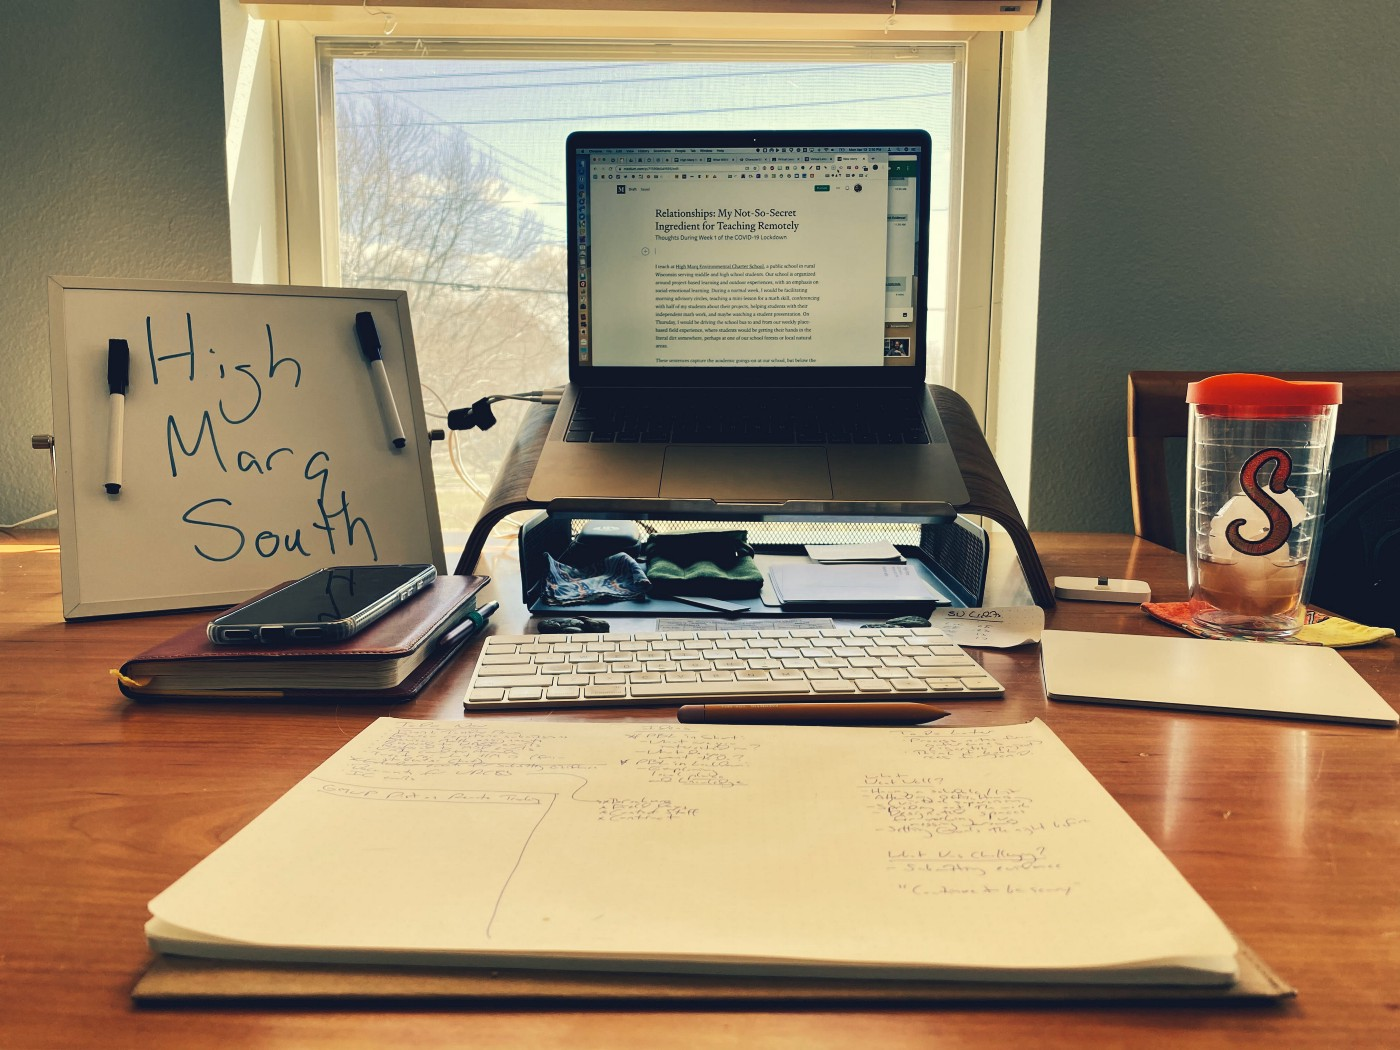 A laptop computer and various desk accessories laid out on a dining room table in front of a window